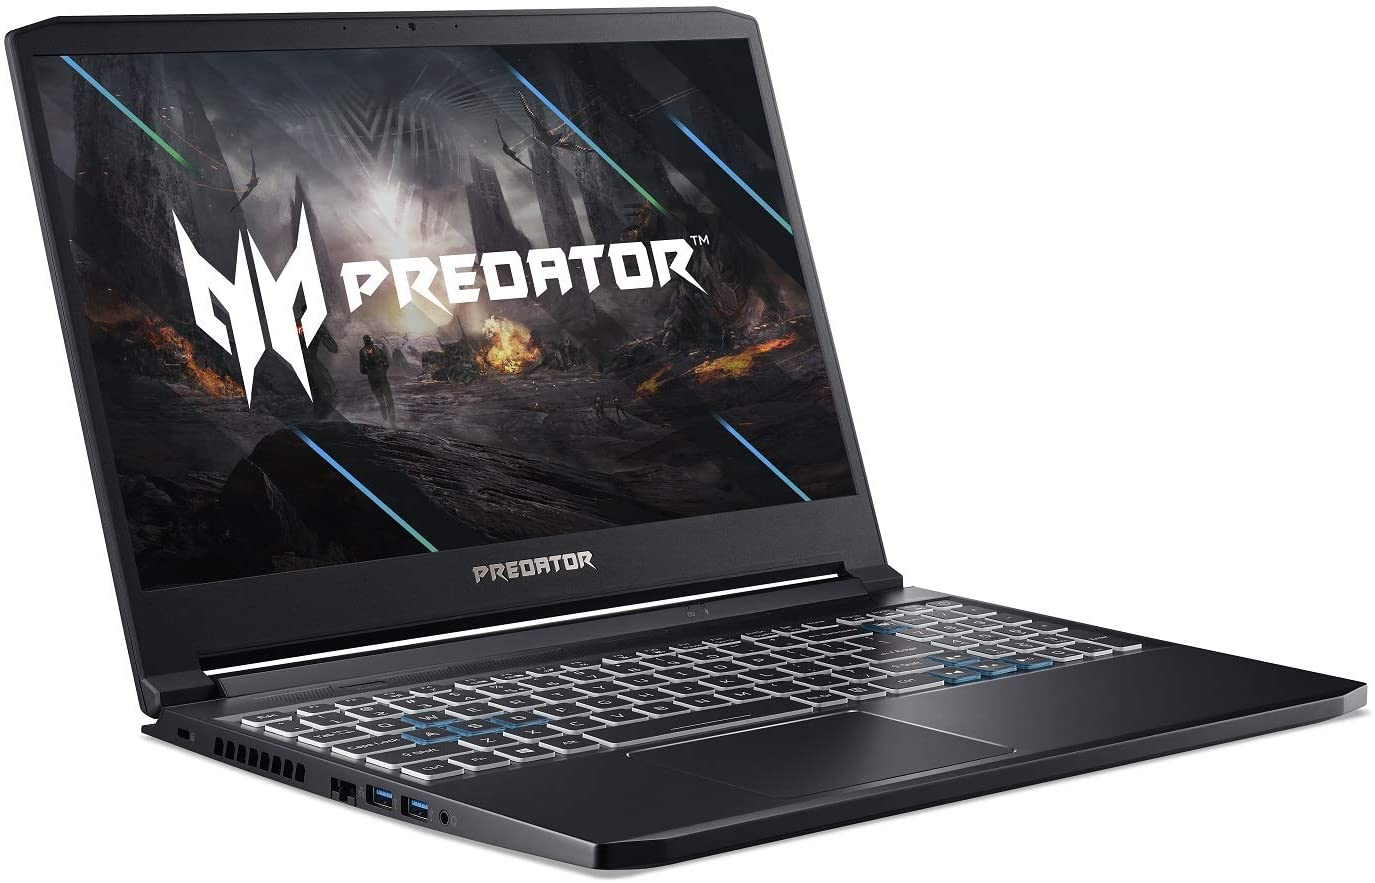 Acer Predator Triton 300 Gaming Laptop - 240Hz, Core i7-10750H, 16GB RAM, 512GB SSD, 8GB NVIDIA GeForce RTX 2070 Max-Q, RGB Keyboard - Windows 10